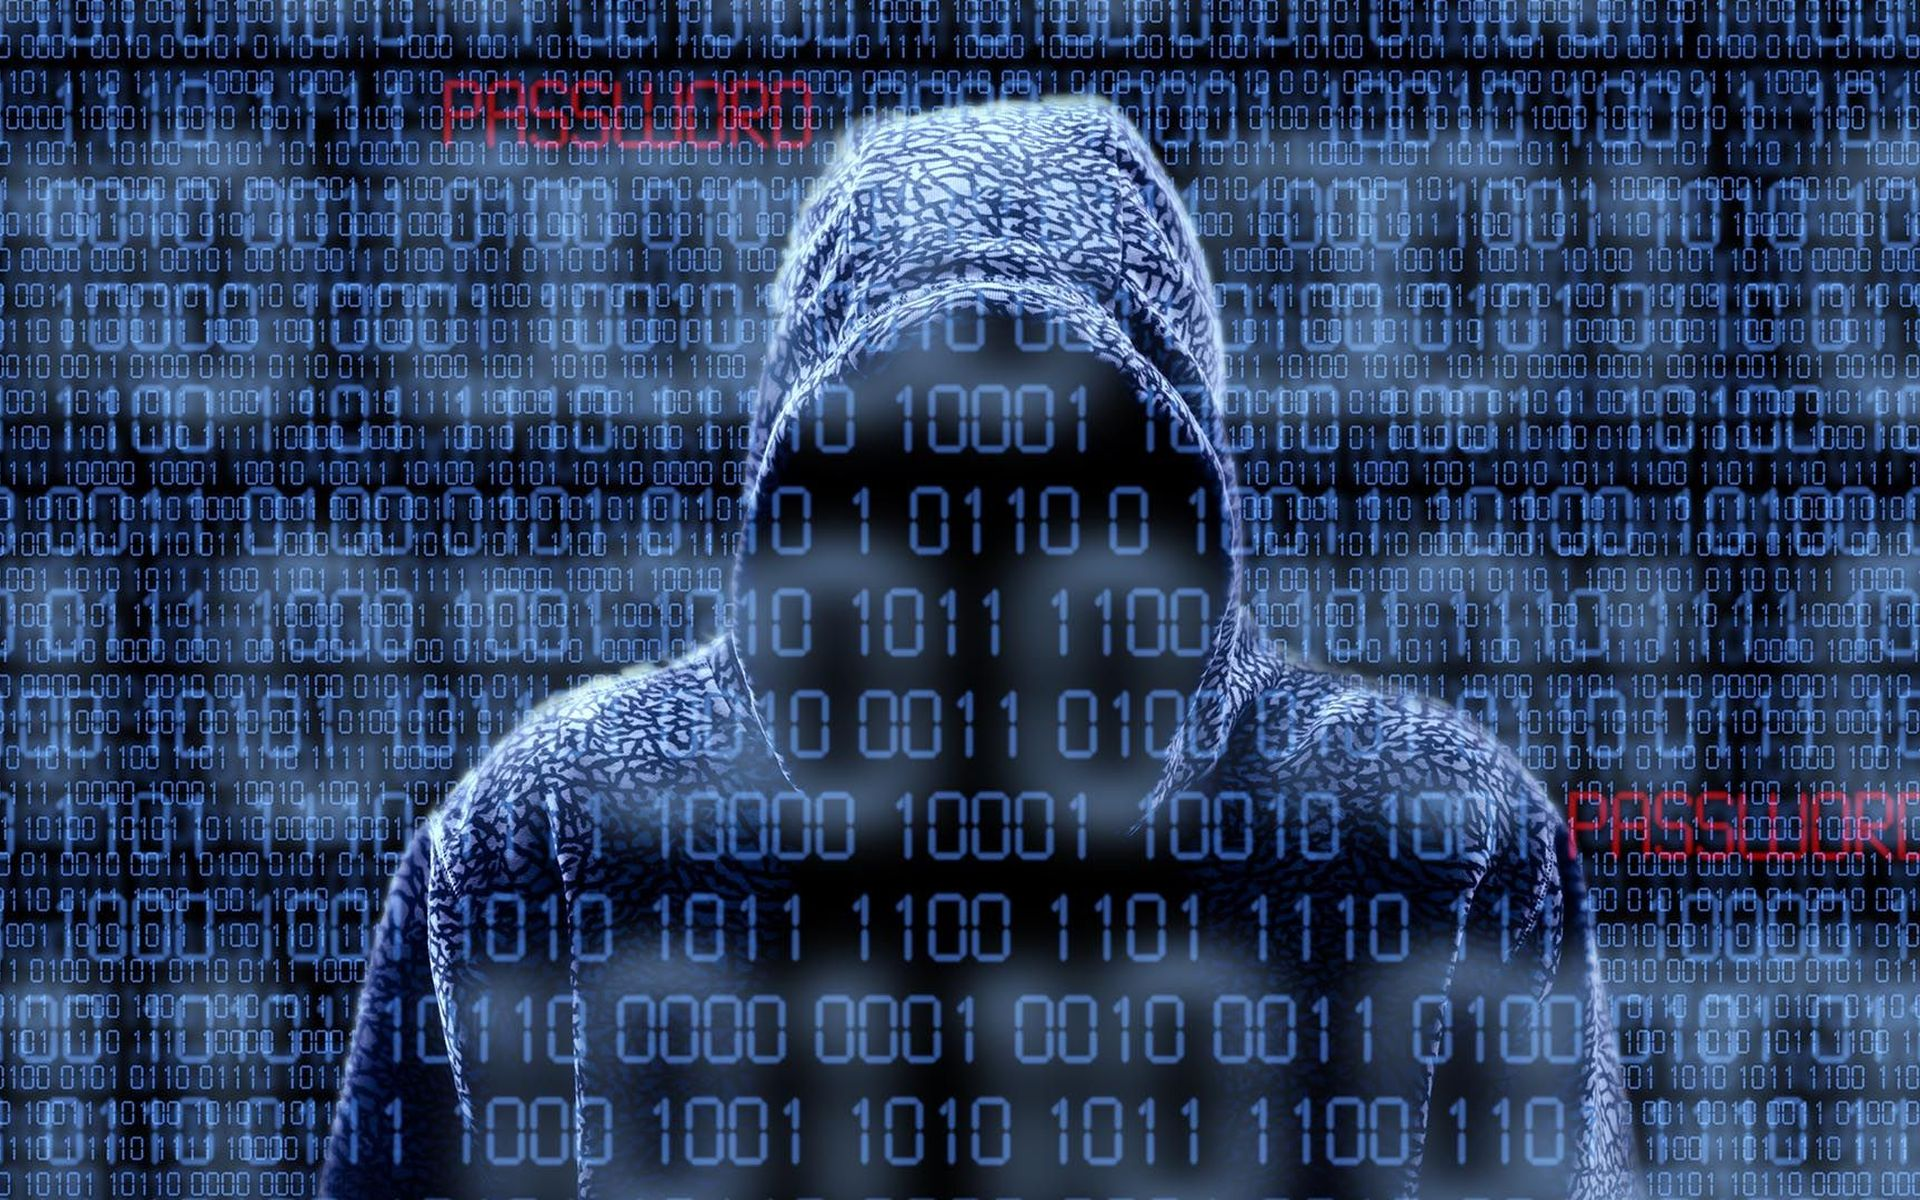 Hacker-Wallpaper-004.jpg (1920×1200)